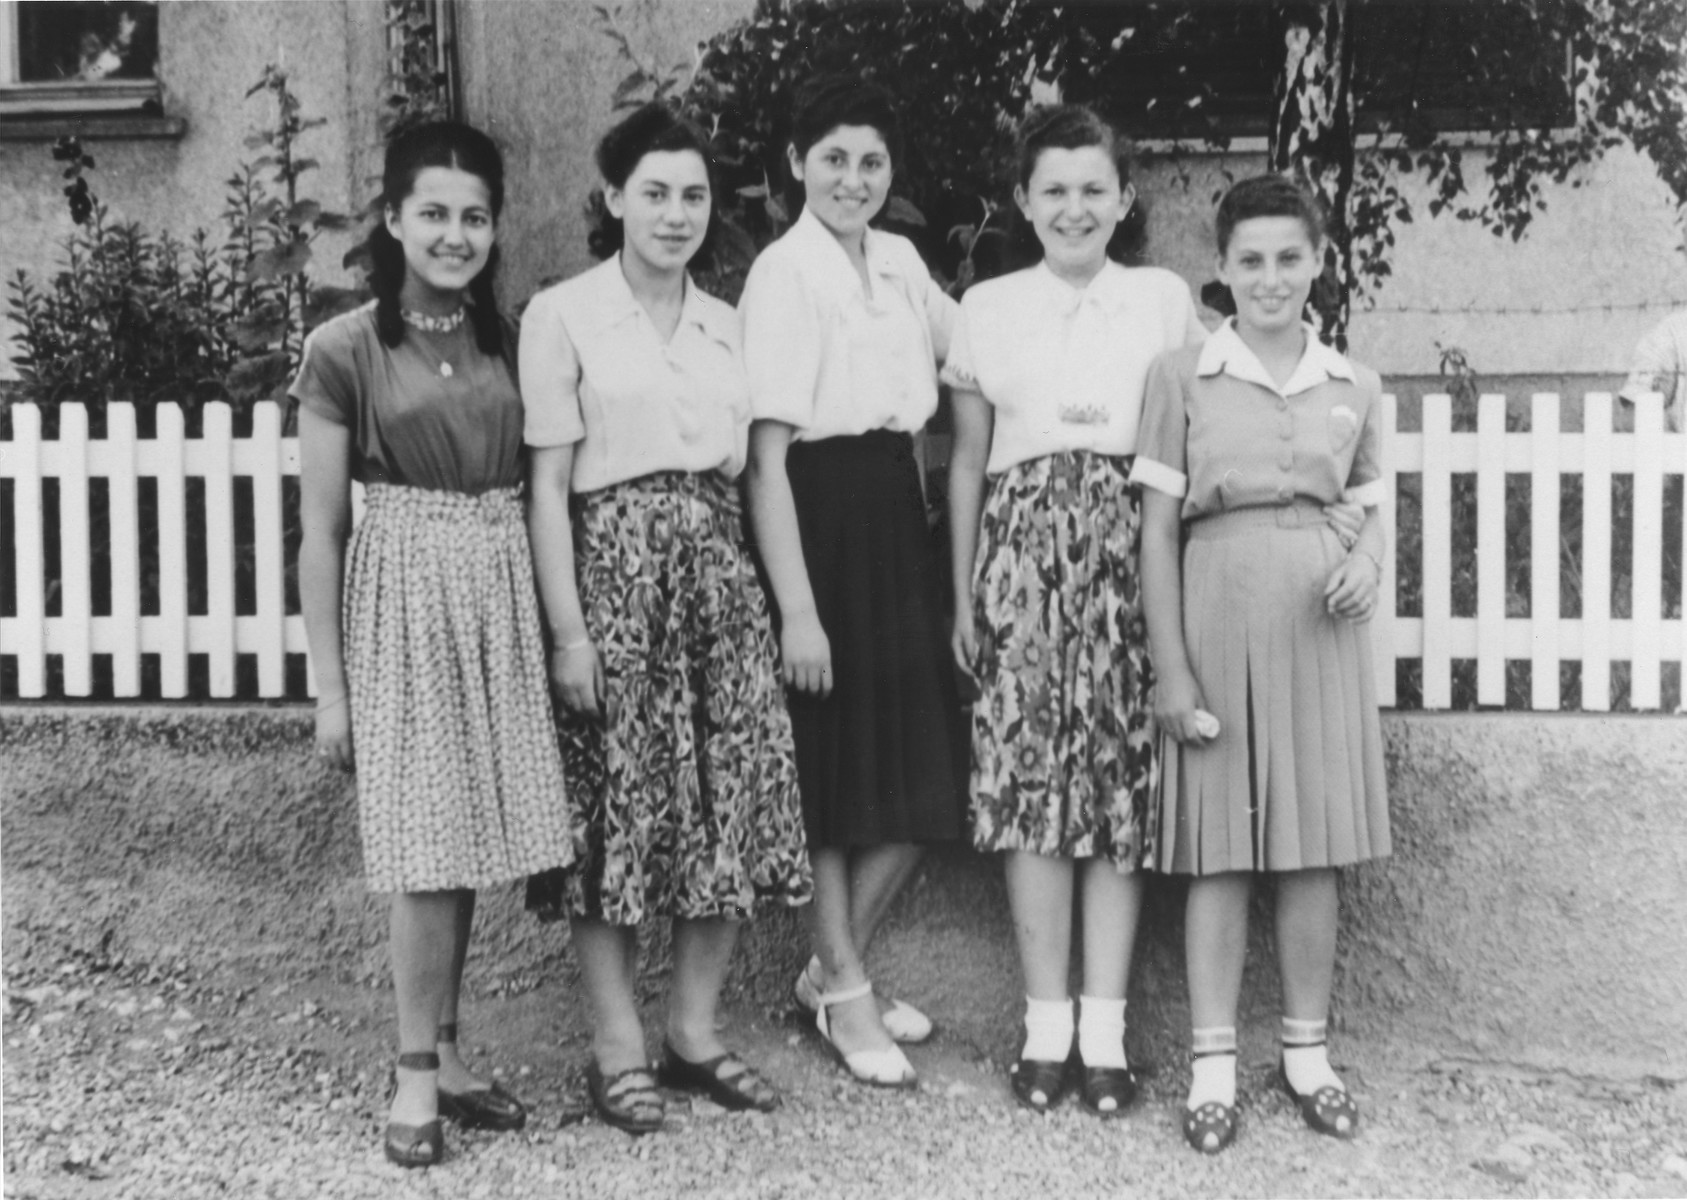 Five young Jewish women pose in front of a fence in the Ulm displaced persons camp.  Pictured from left to right are Lila Rozen, unknown, Regina Yablonska, unknown and Lila Rajs.